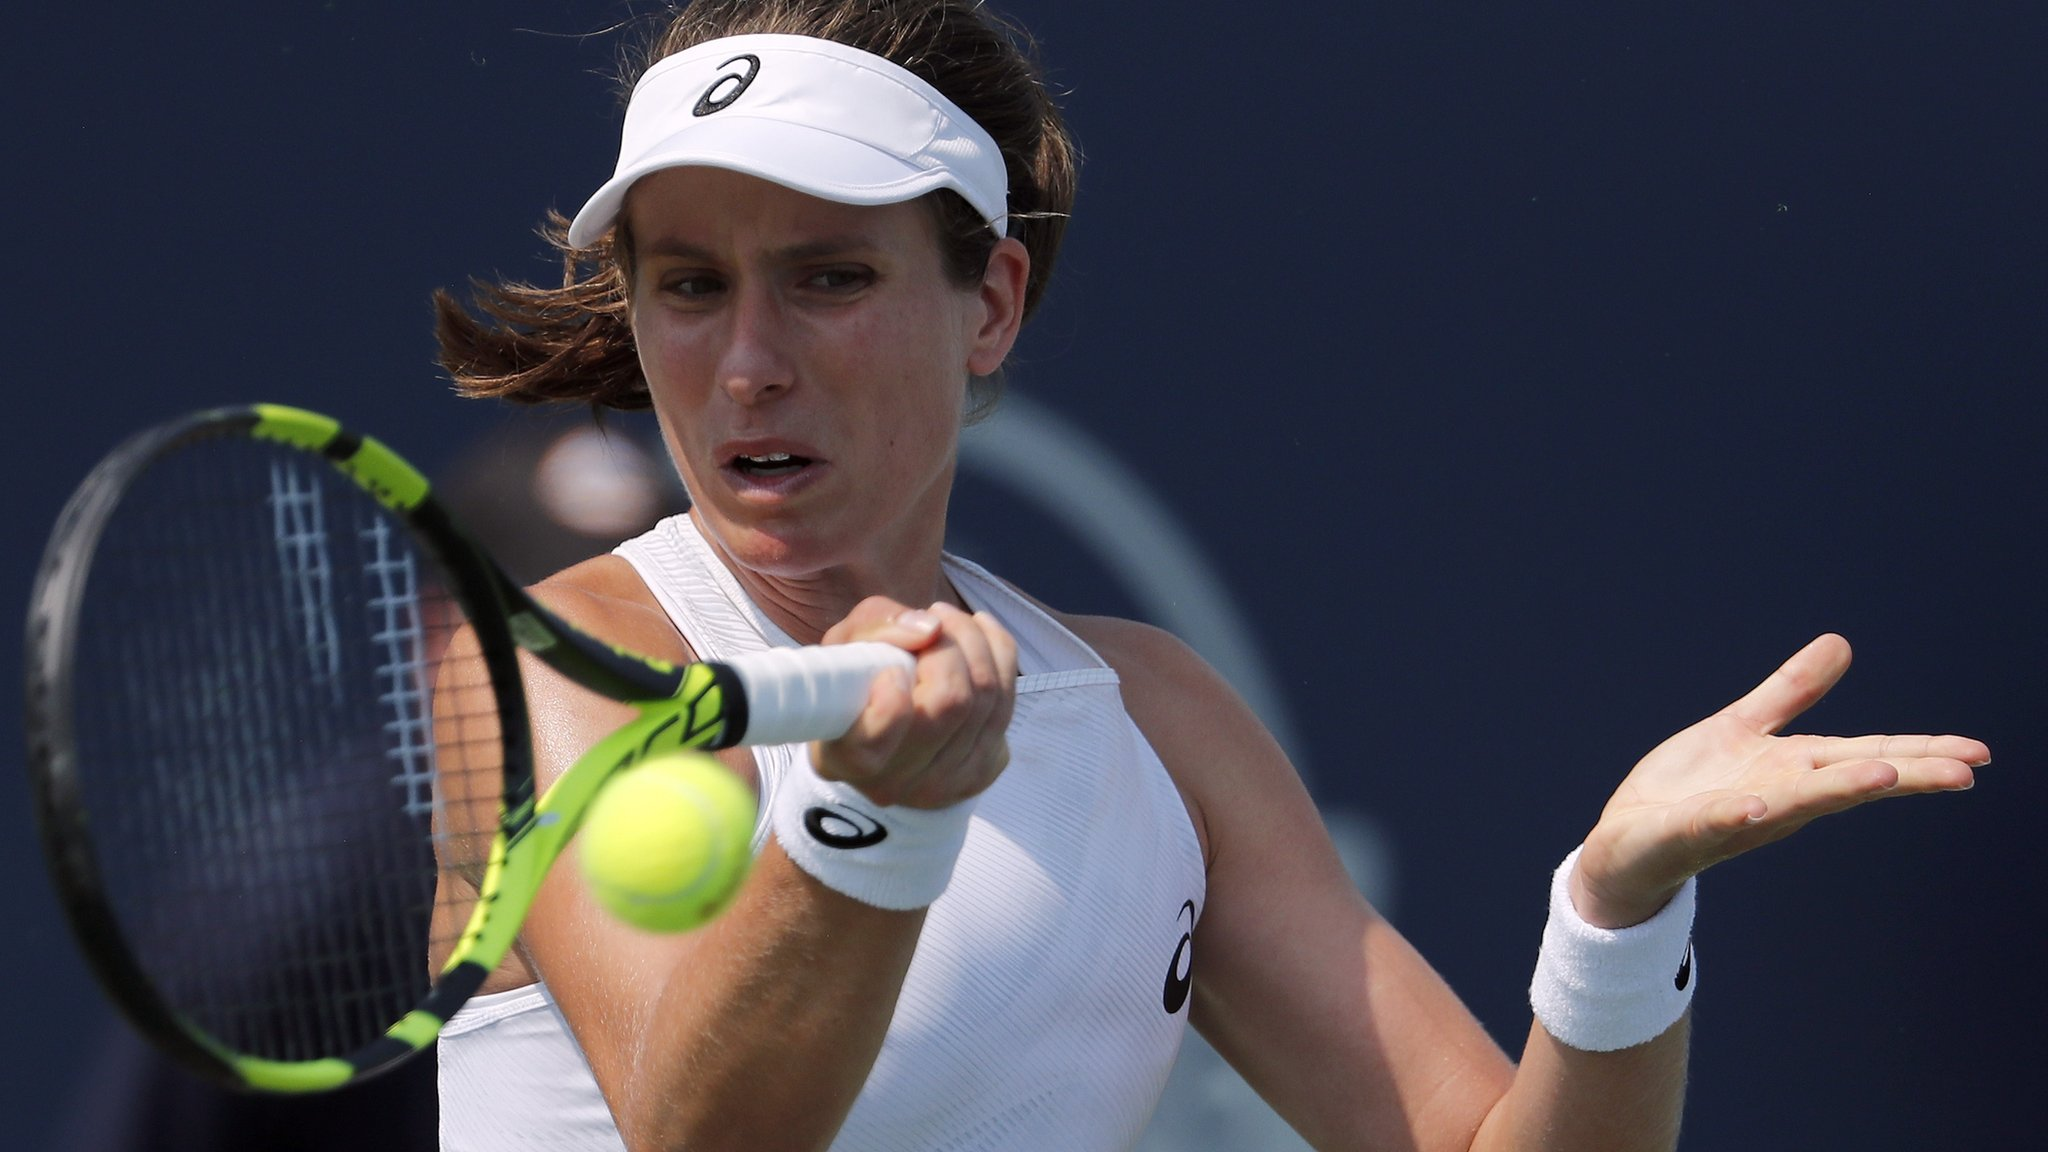 Johanna Konta wins in Connecticut Open first round against Laura Siegemund